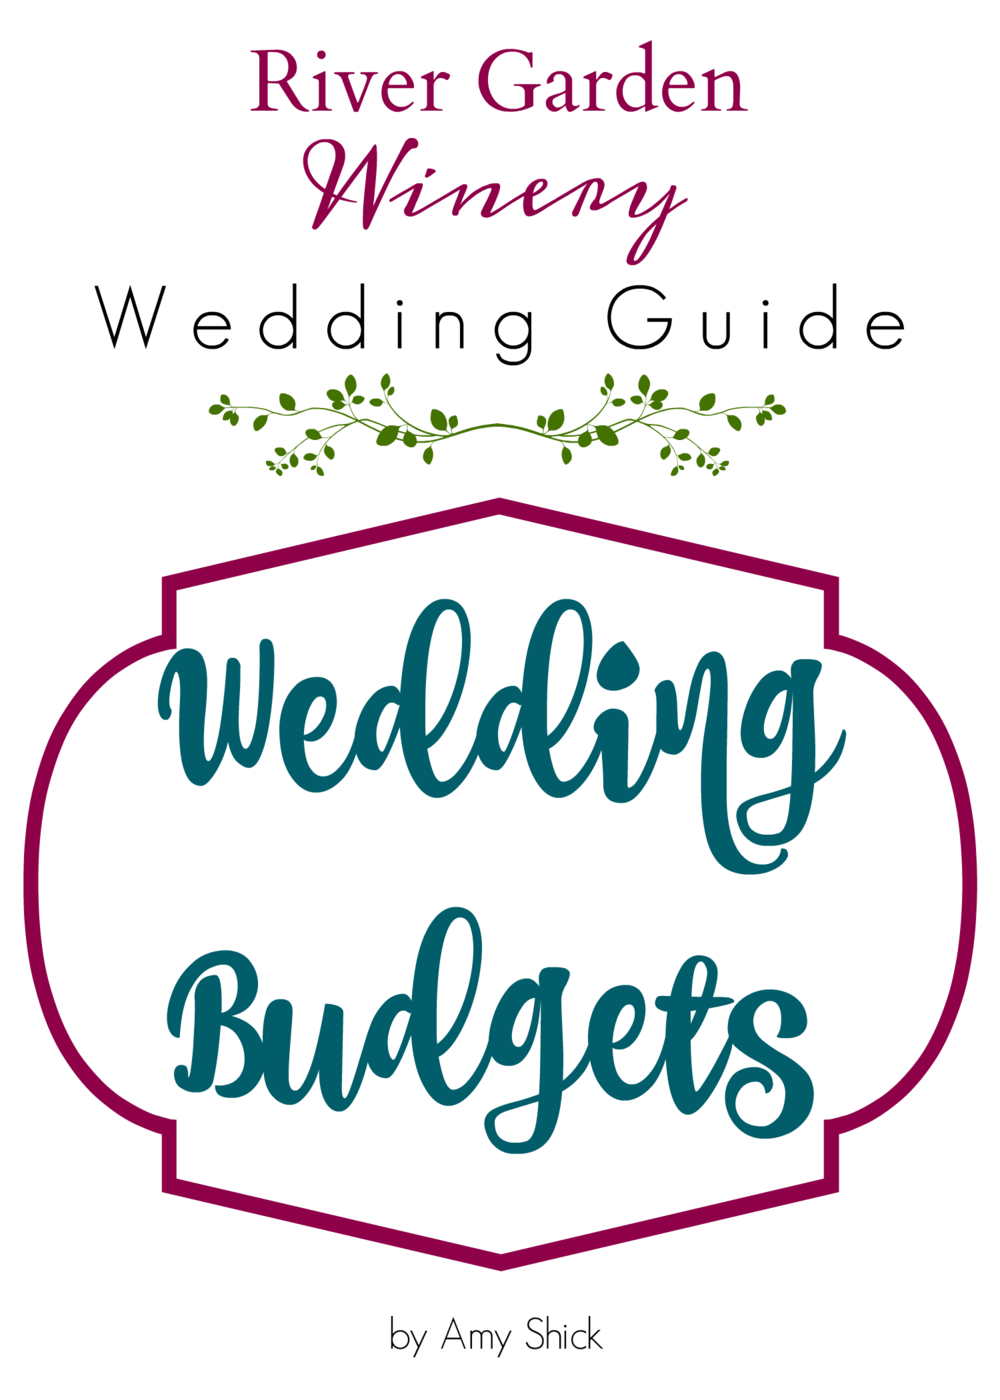 wedding budgets cover.png